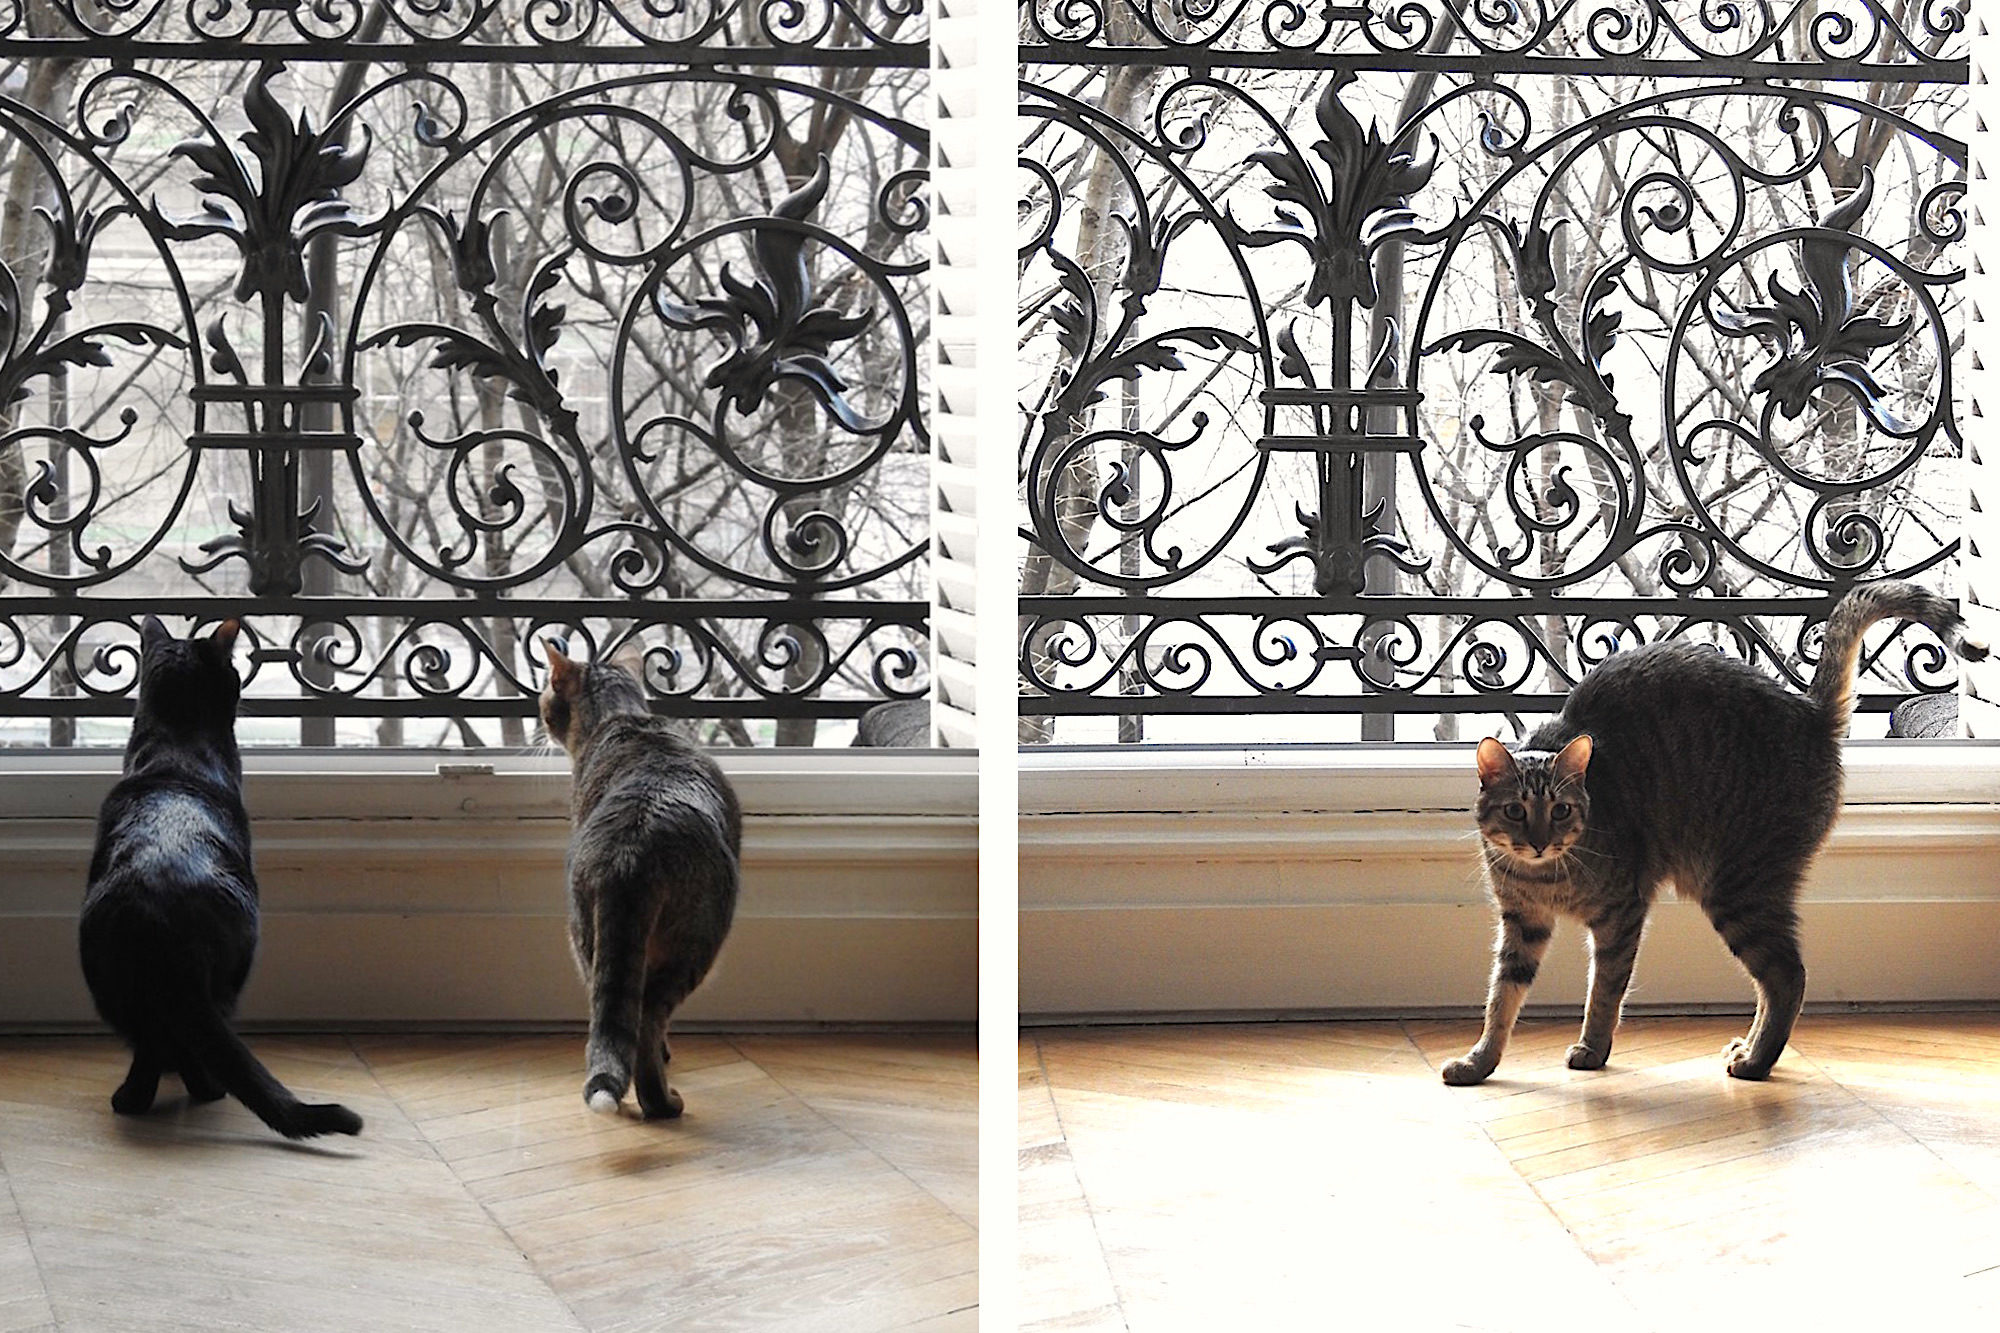 Two sleek kittens standing and looking out of an open window through the ornate iron railings in a Paris apartment (left). One of the cats standing its back up, facing the camera, in front of an open window and ornate railings in a Paris apartment (left).